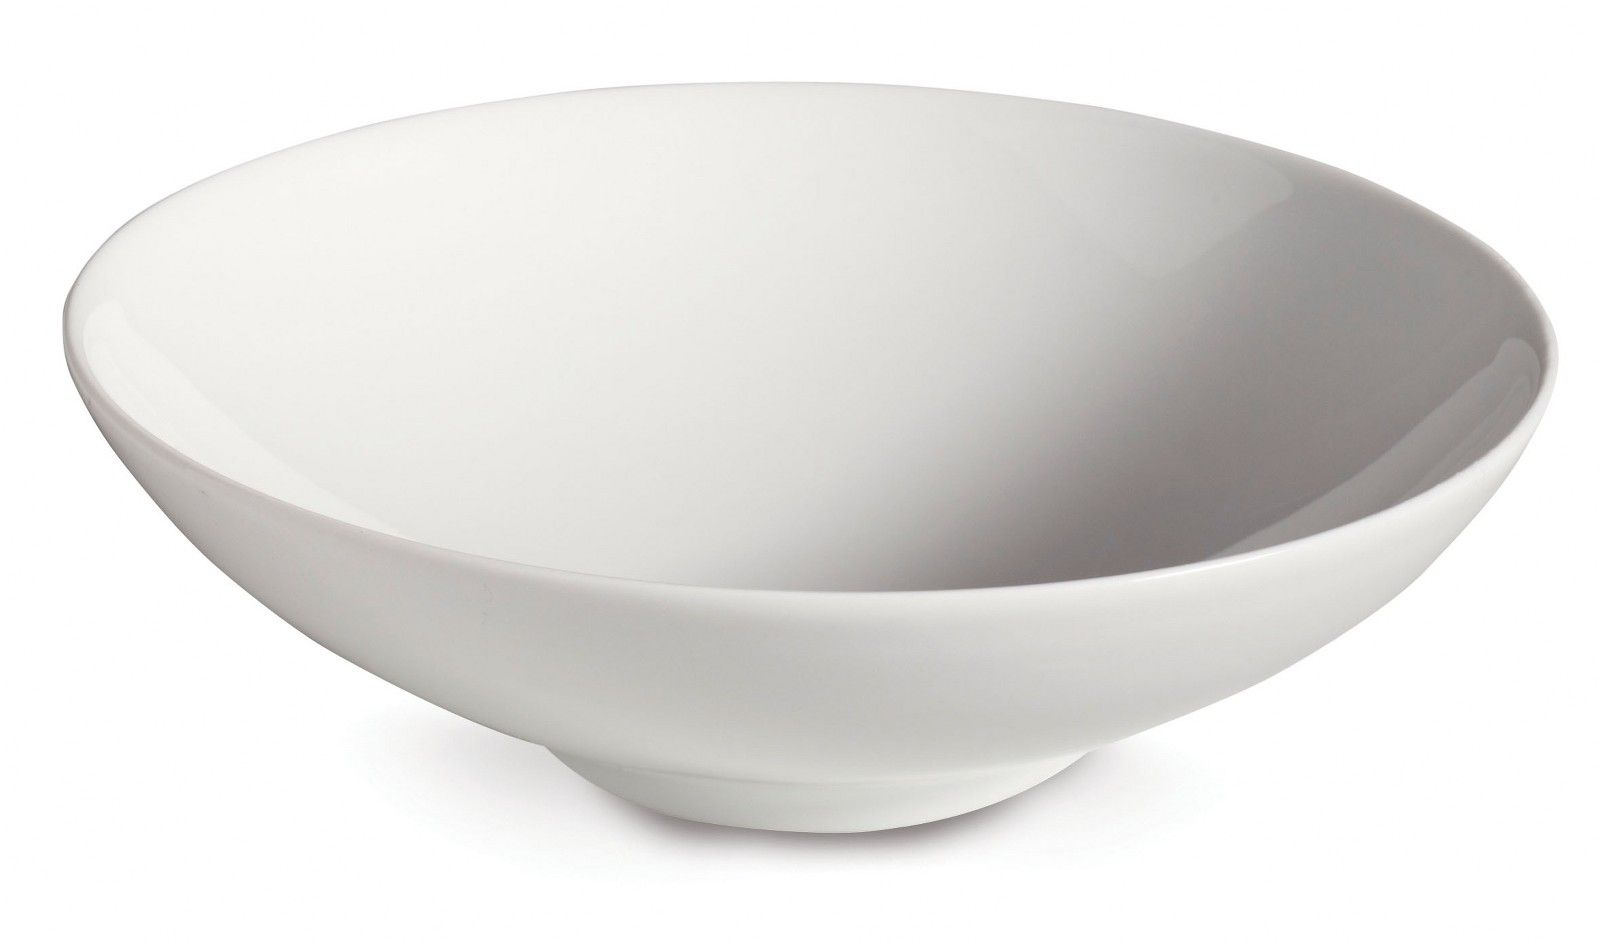 MINI BOWL PORCELANA ELEGANCE 72ML CORONA - YOI 8104120164